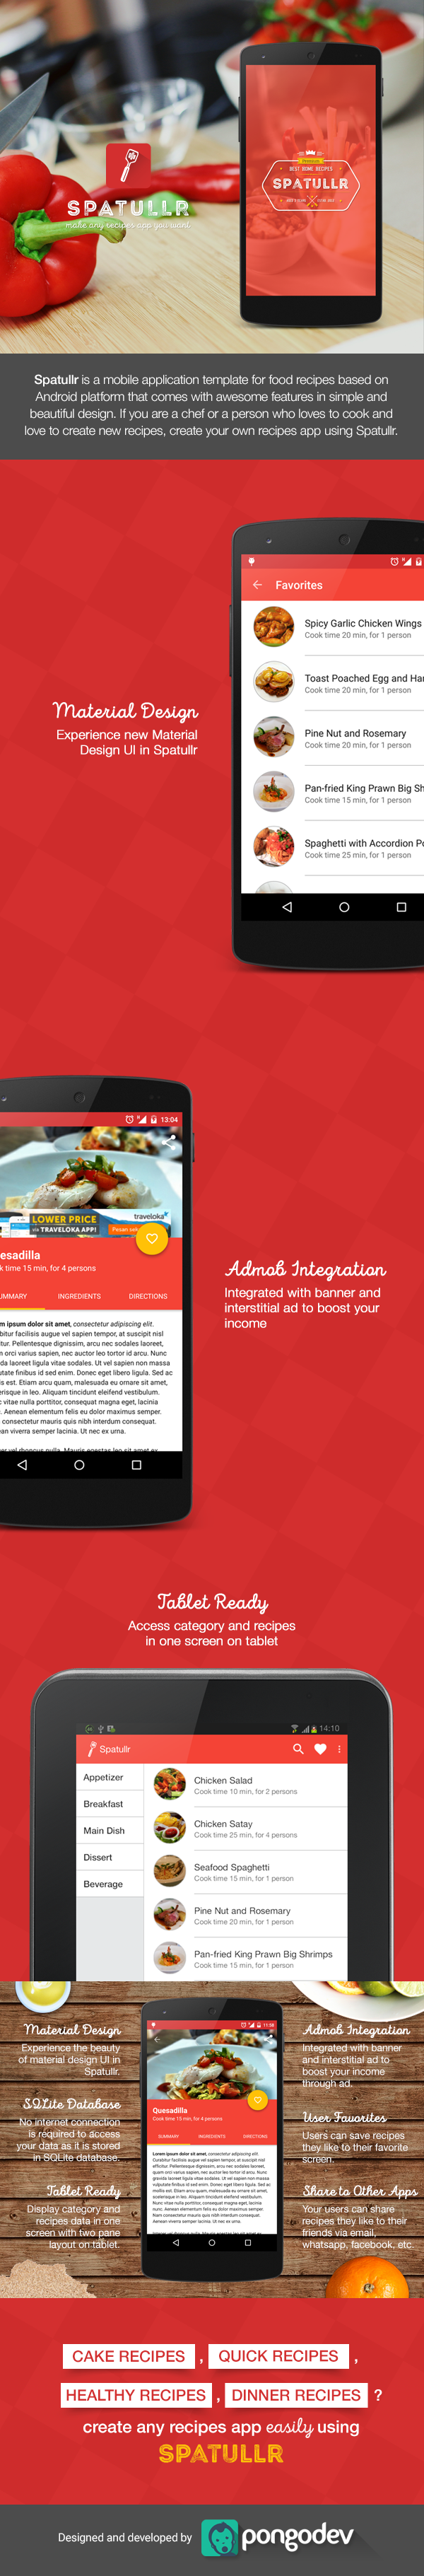 Spatullr recipes app for android on behance pongodev app spatullr is a mobile application template for food recipes based on android platform that comes with awesome features in simple and beautiful design forumfinder Image collections